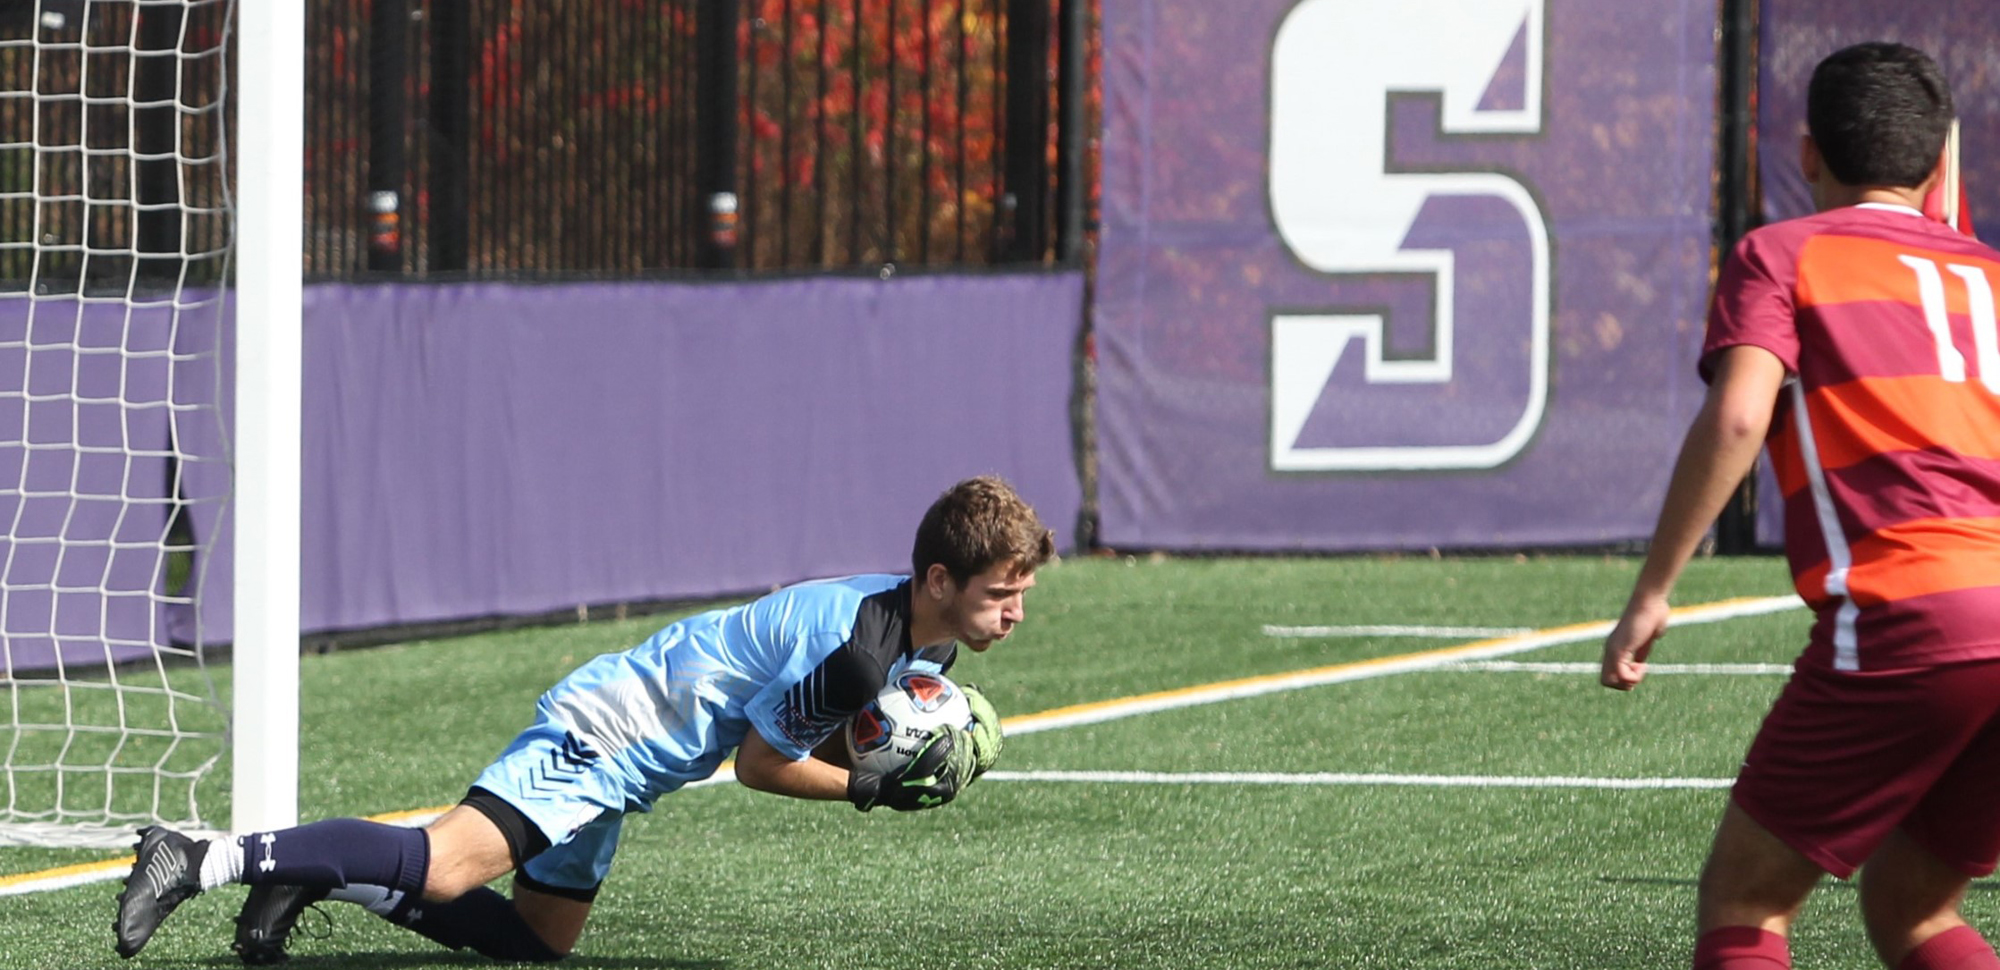 Sophomore goalie Jake Hodlofski was named Landmark Conference Athlete of the Week on Monday after allowing one goal in two games last week and registering 10 saves.